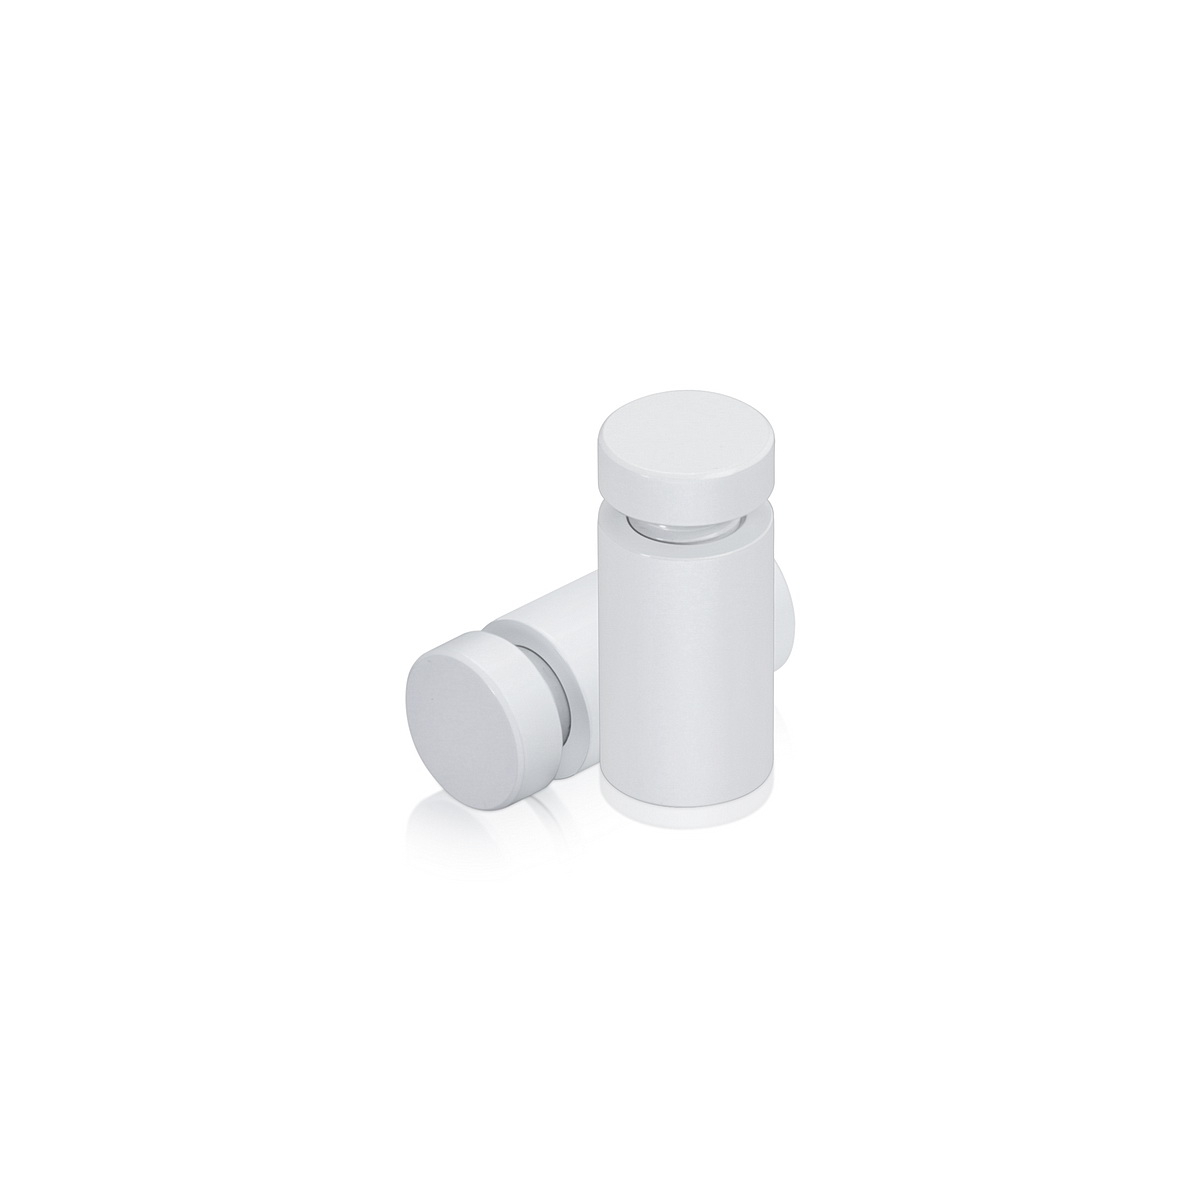 Affordable Aluminum Standoffs, Diameter: 1/2'', Standoff:  3/4'', Aluminum White Coated Finish